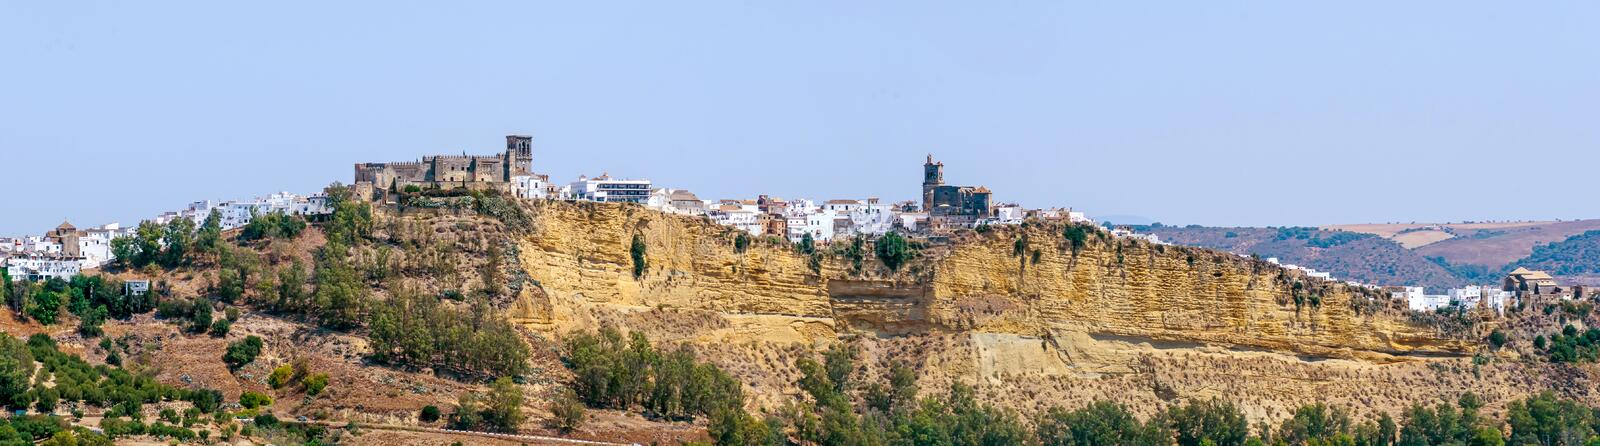 Arcos de la Frontera panoramic view. Panoramic view of Arcos de la frontera, typical town of white towns in Cadiz province, Andalusia, Spain stock photography